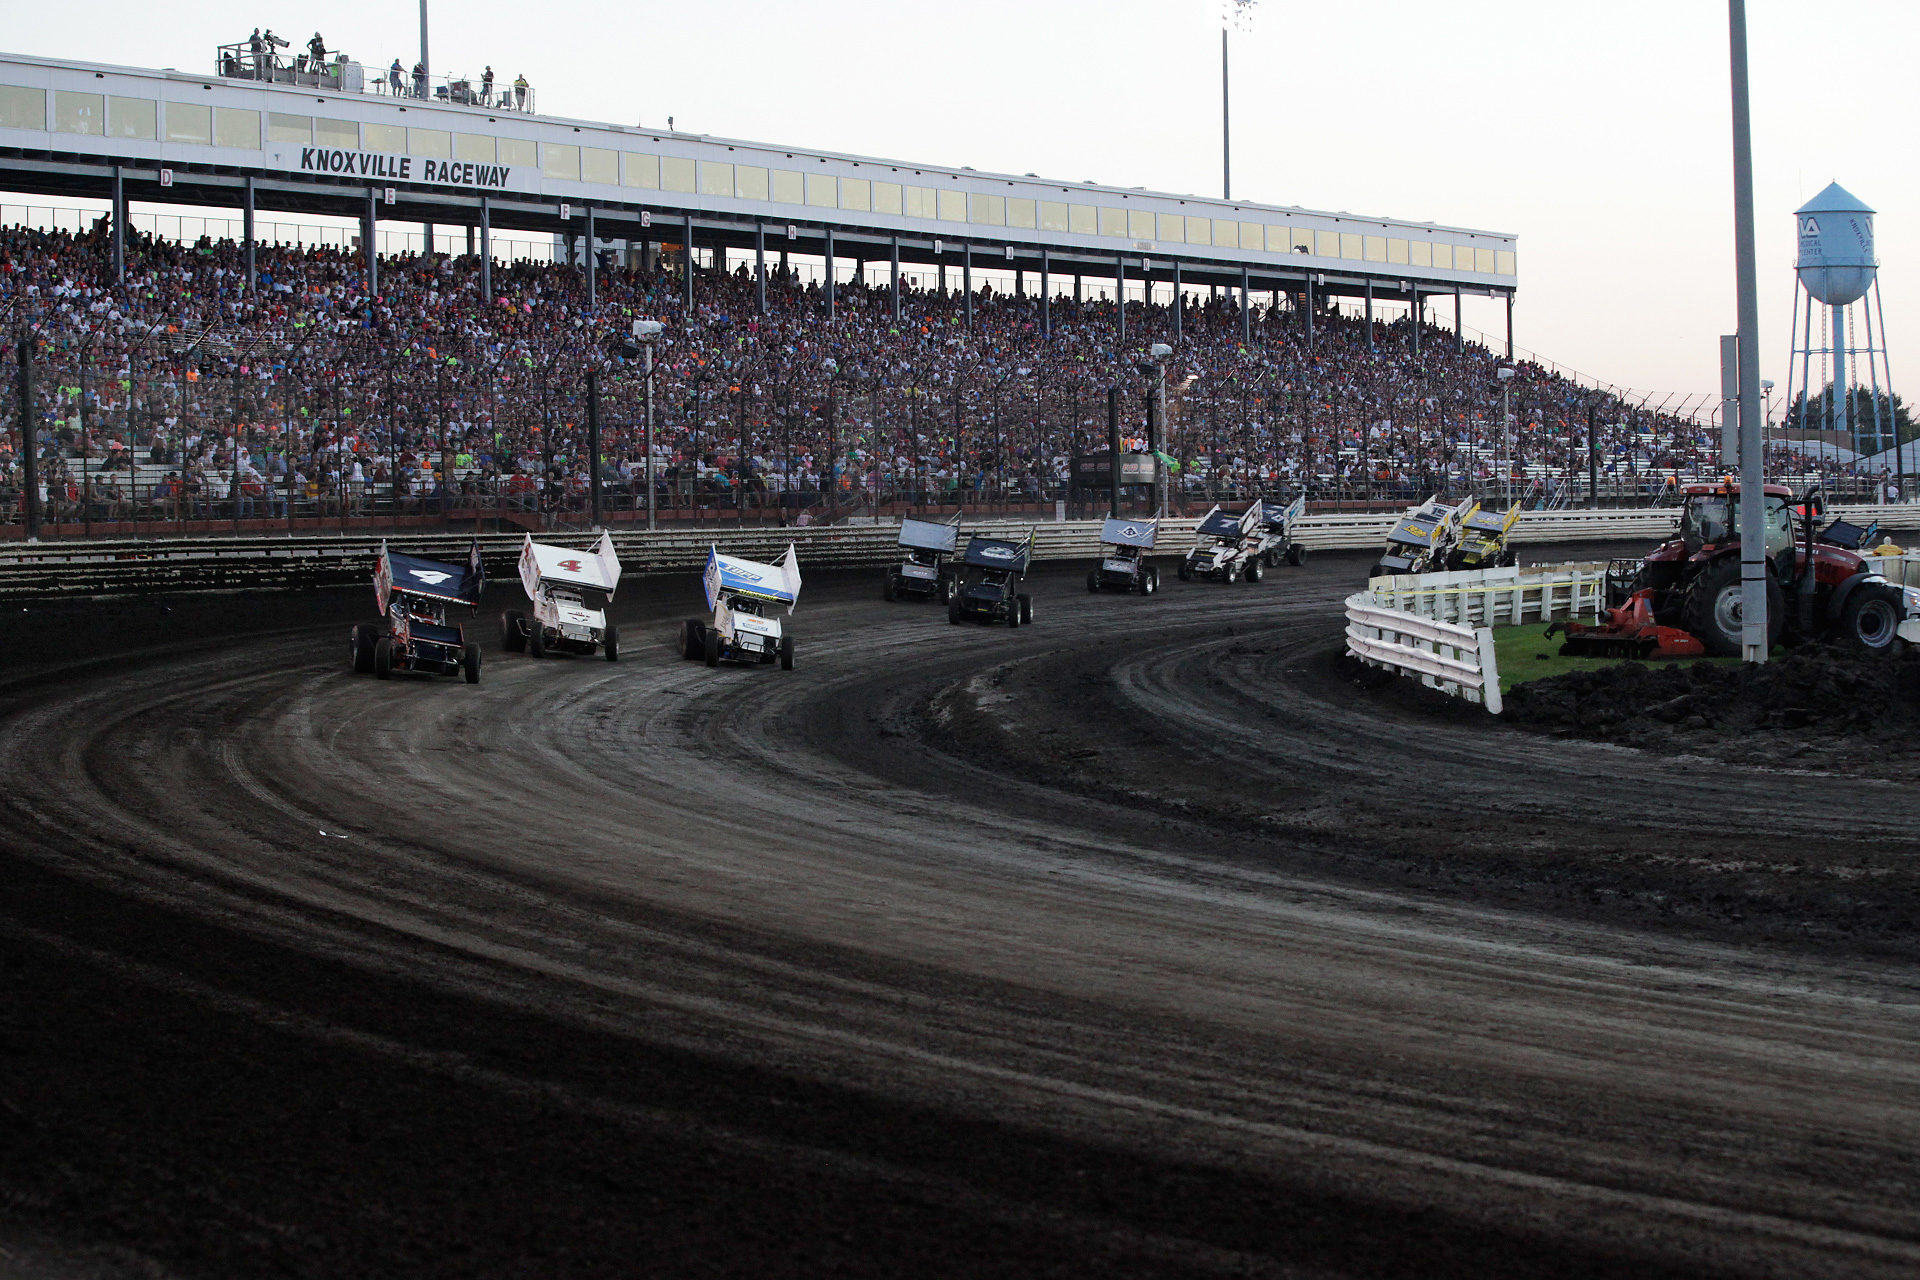 Left to right, No. 4 Jon Agan, No. 4S Danny Smith and 23C Tyler Courtney go 3 wide into turn 1 in the E Main on the final night of The Knoxville Nationals. ( Jeffrey Turford / TDP )